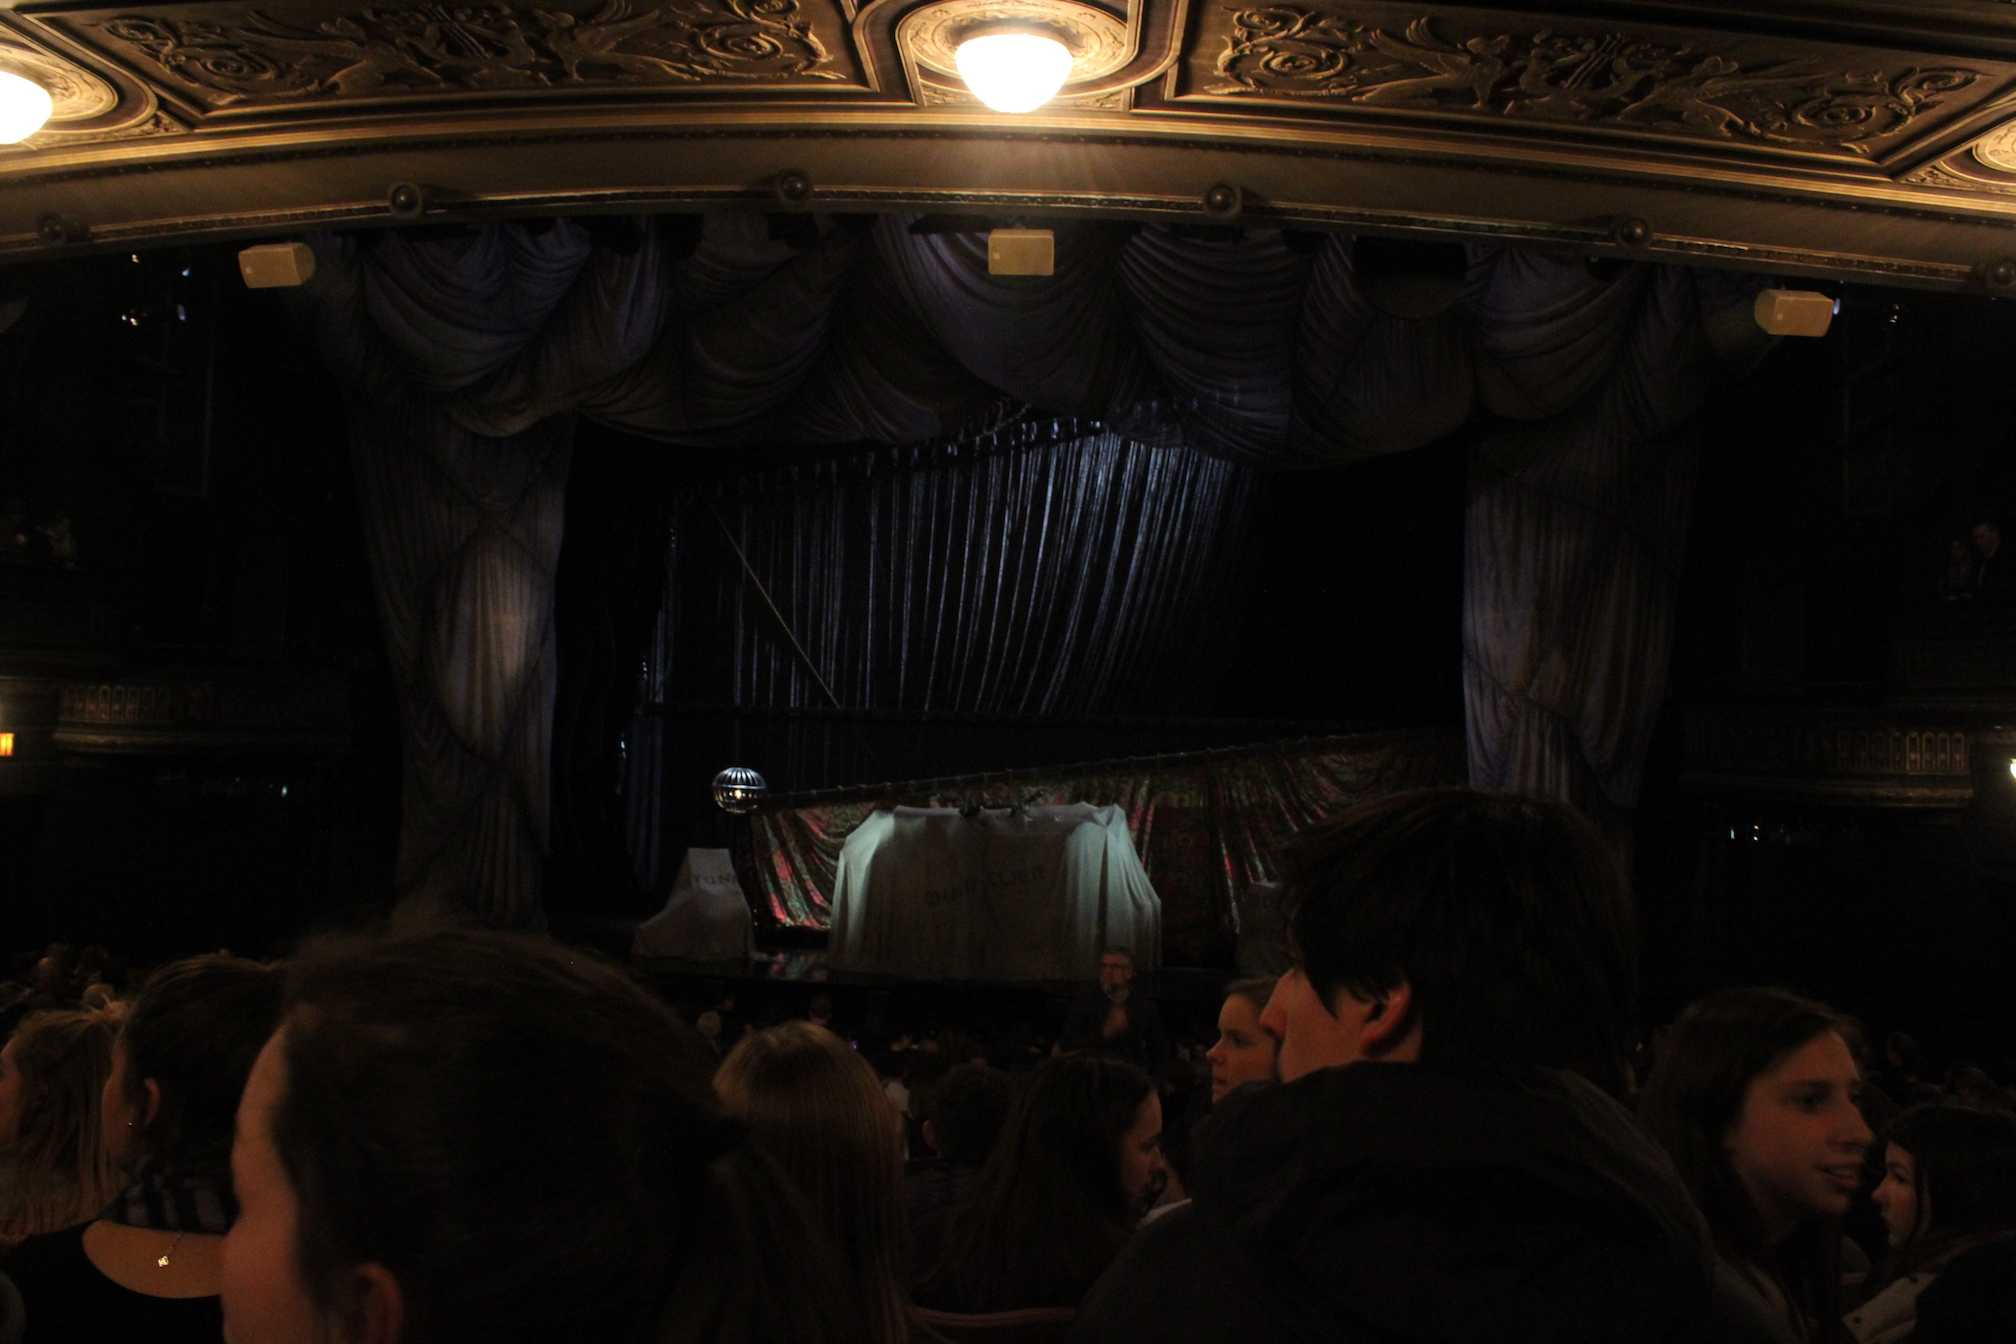 The+stage+before+the+Broadway+show%2C+Phantom+of+the+Opera%2C+began.